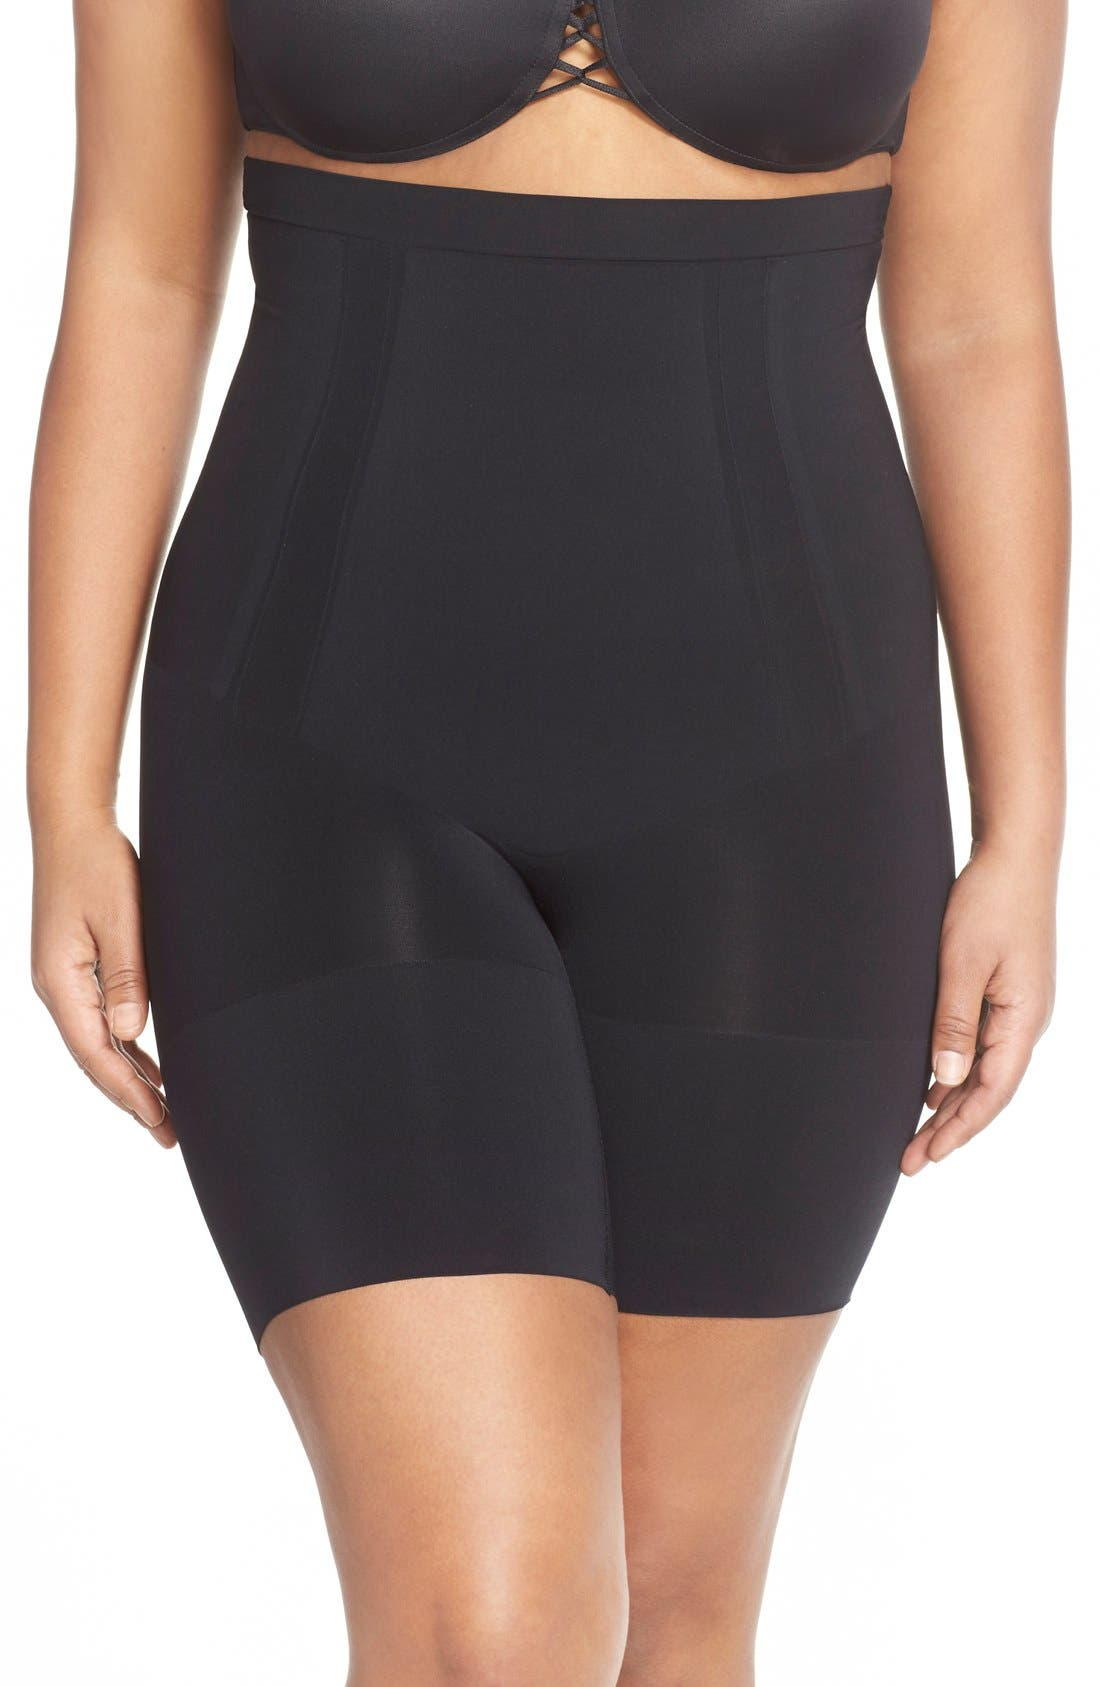 Alternate Image 1 Selected - SPANX® OnCore High Waist Mid-Thigh Shorts (Plus Size)